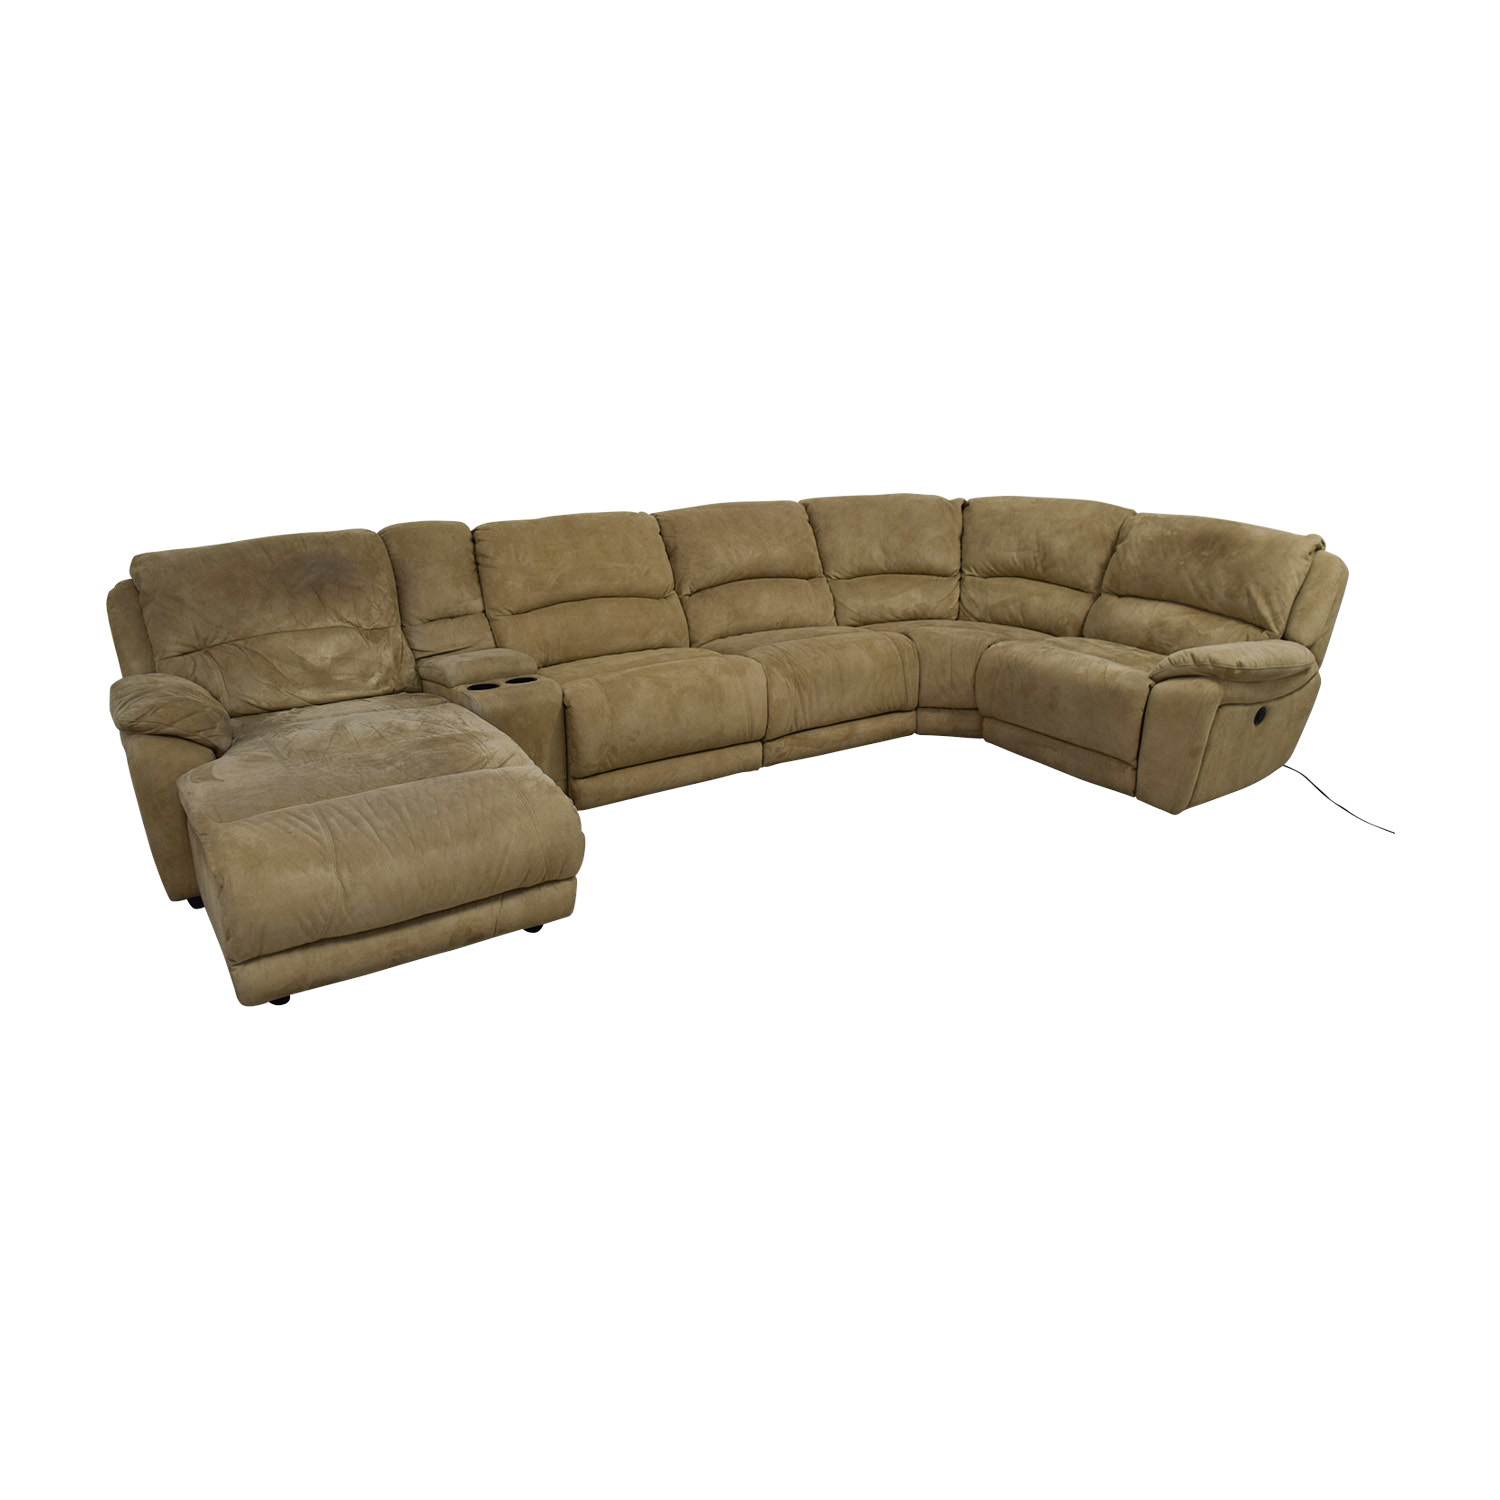 Raymour & Flanigan Raymour & Flanigan Cindy Crawford Mackenzie Microfiber Power Reclining Sectional Sofas